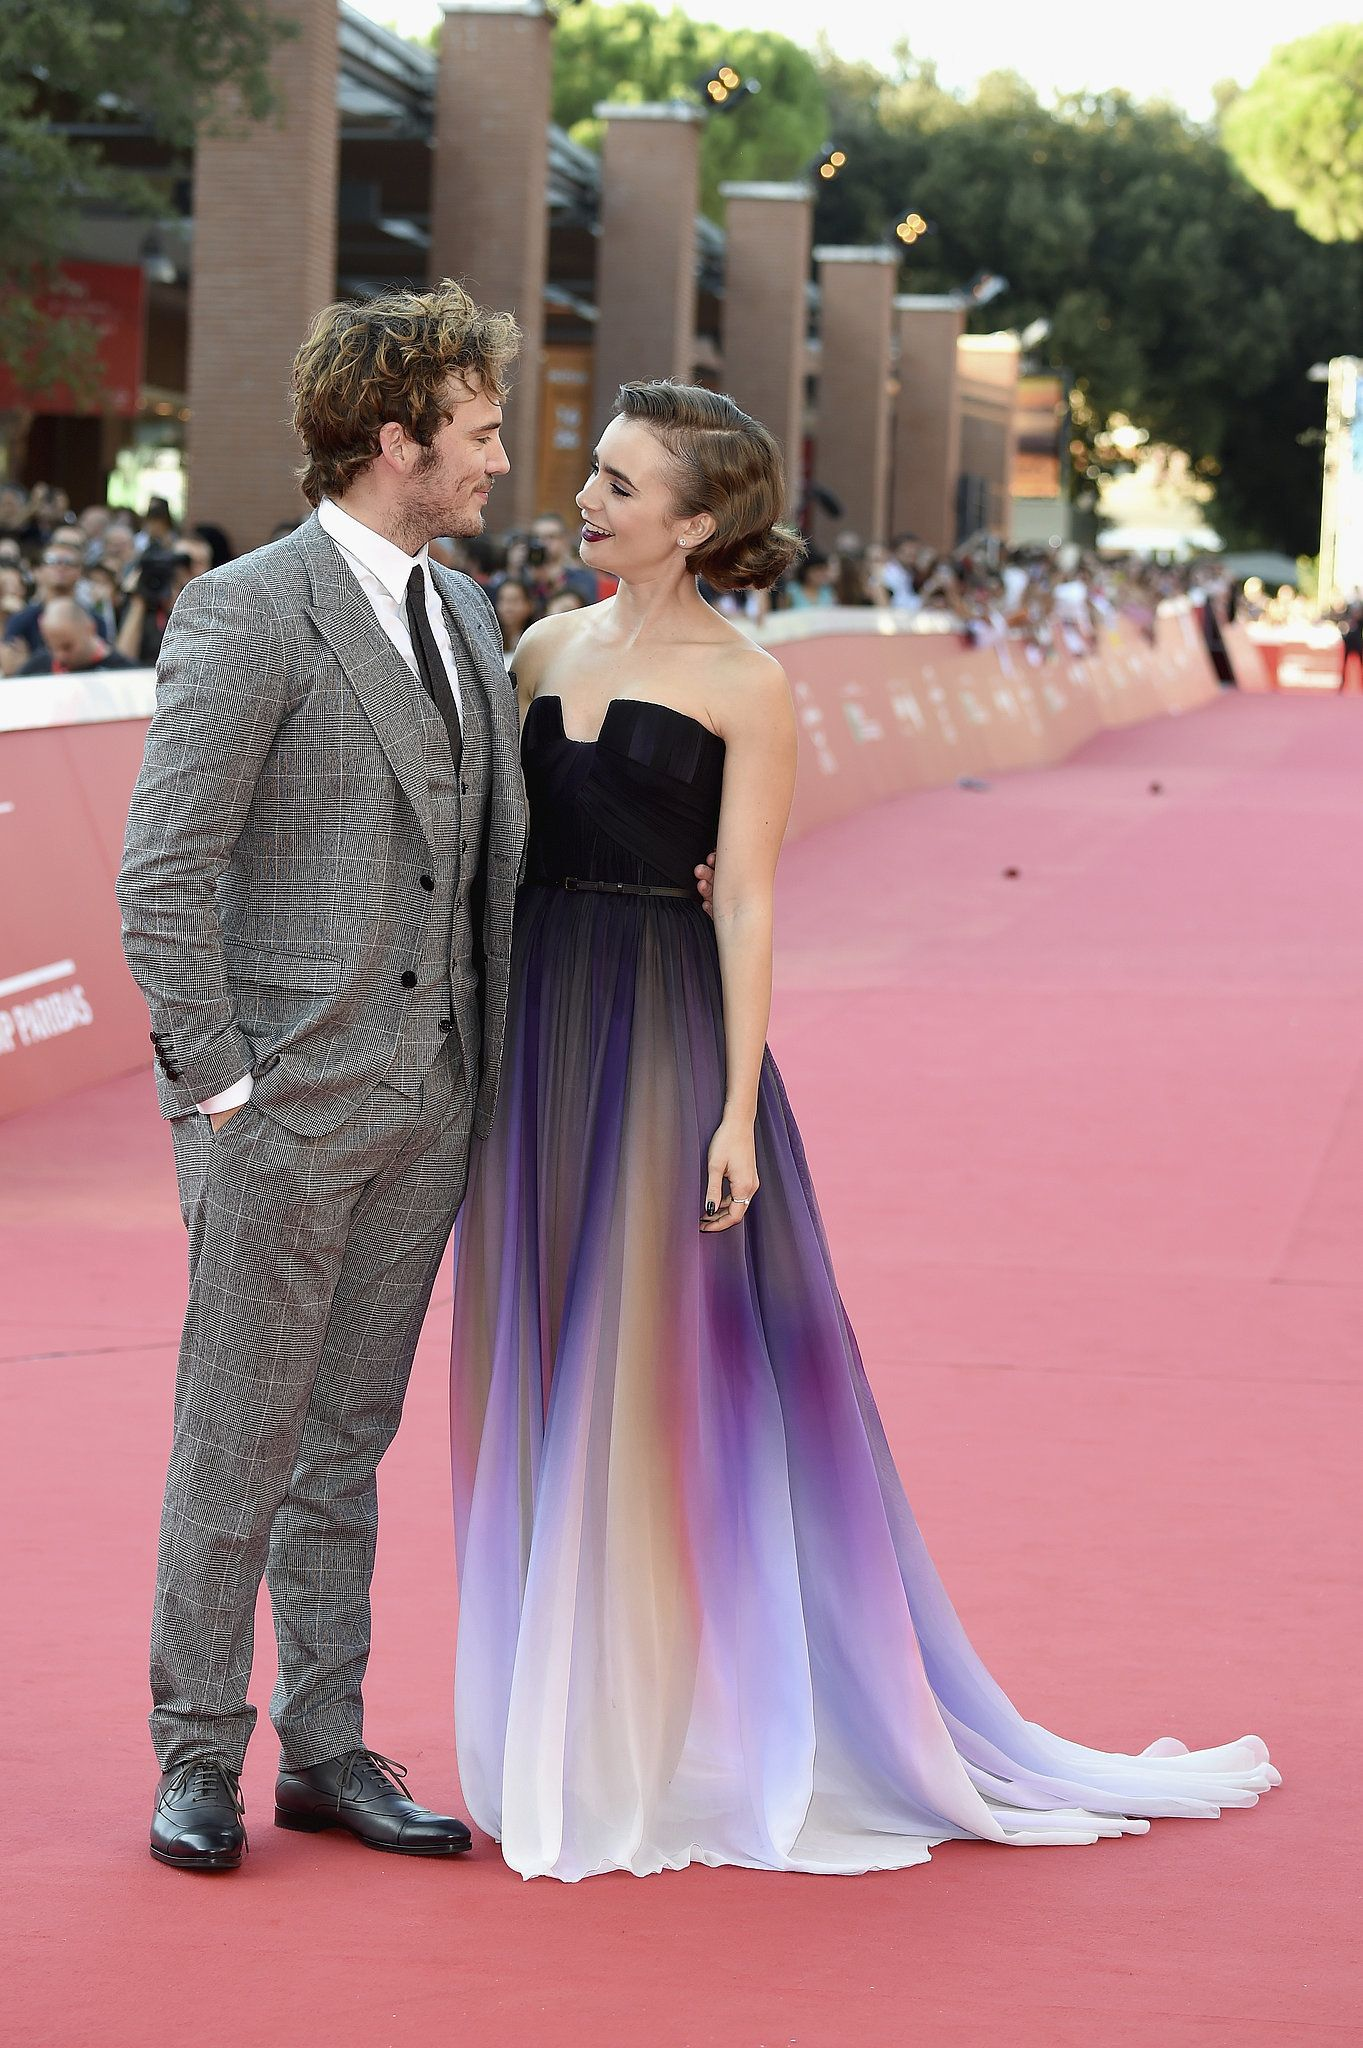 Sam Claflin Couldn\'t Take His Eyes Off of Her | Famosos, Vestiditos y Tv